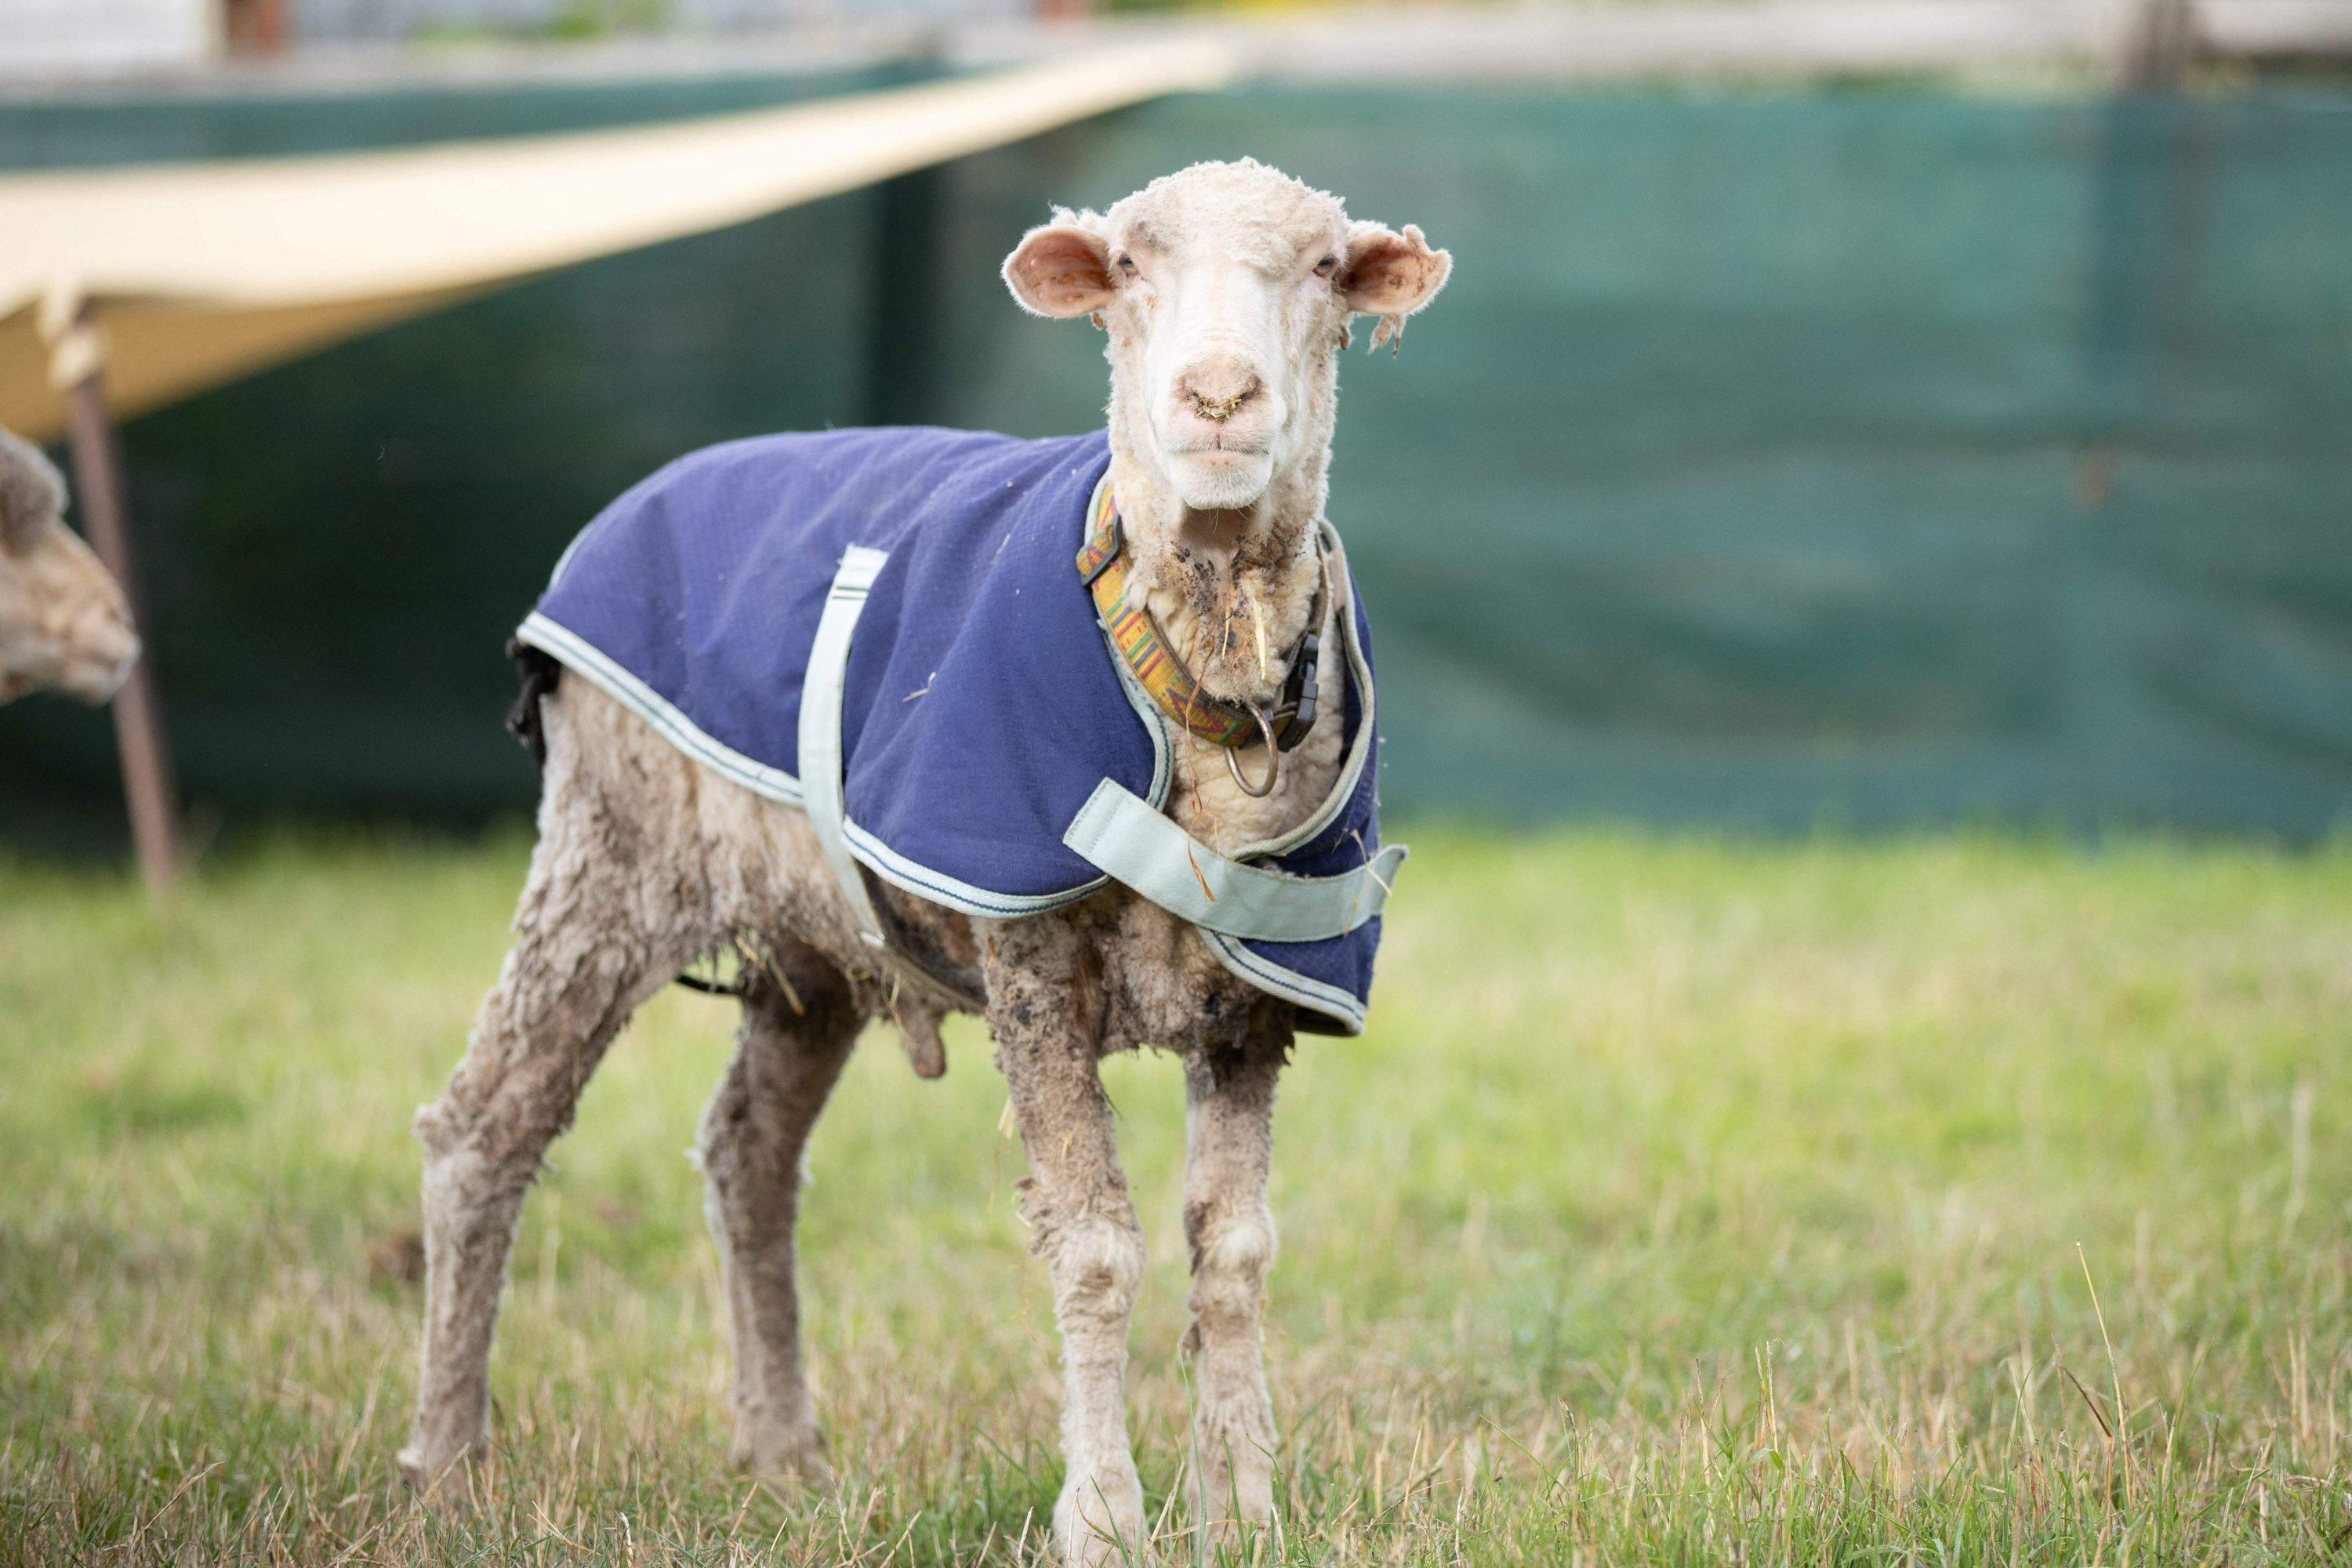 'Baarack' the sheep, can be seen at Edgar's Mission Farm Sanctuary after he was sheared, Lancefield, Victoria state, Feb. 25, 2021. (Edgar's Mission Handout via AFP)